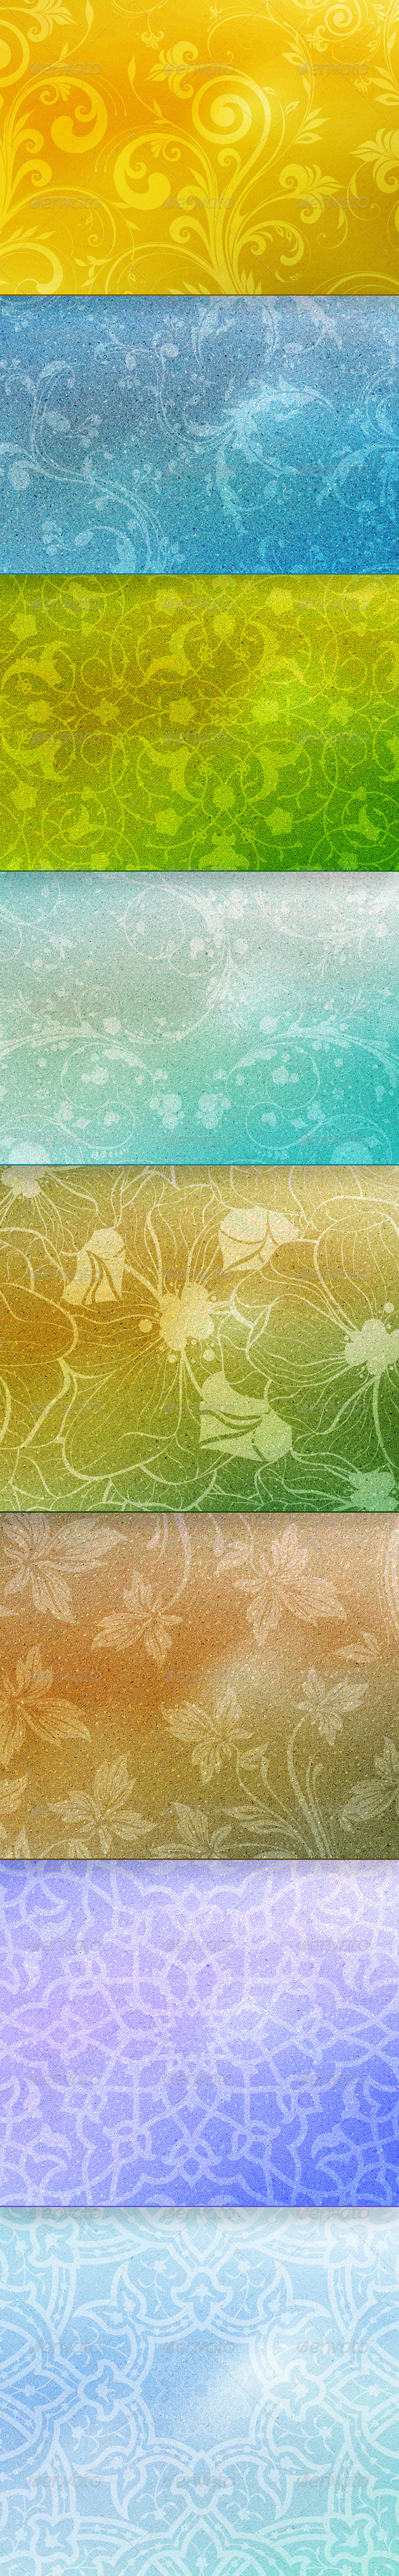 Textured Ornaments - Backgrounds Graphics